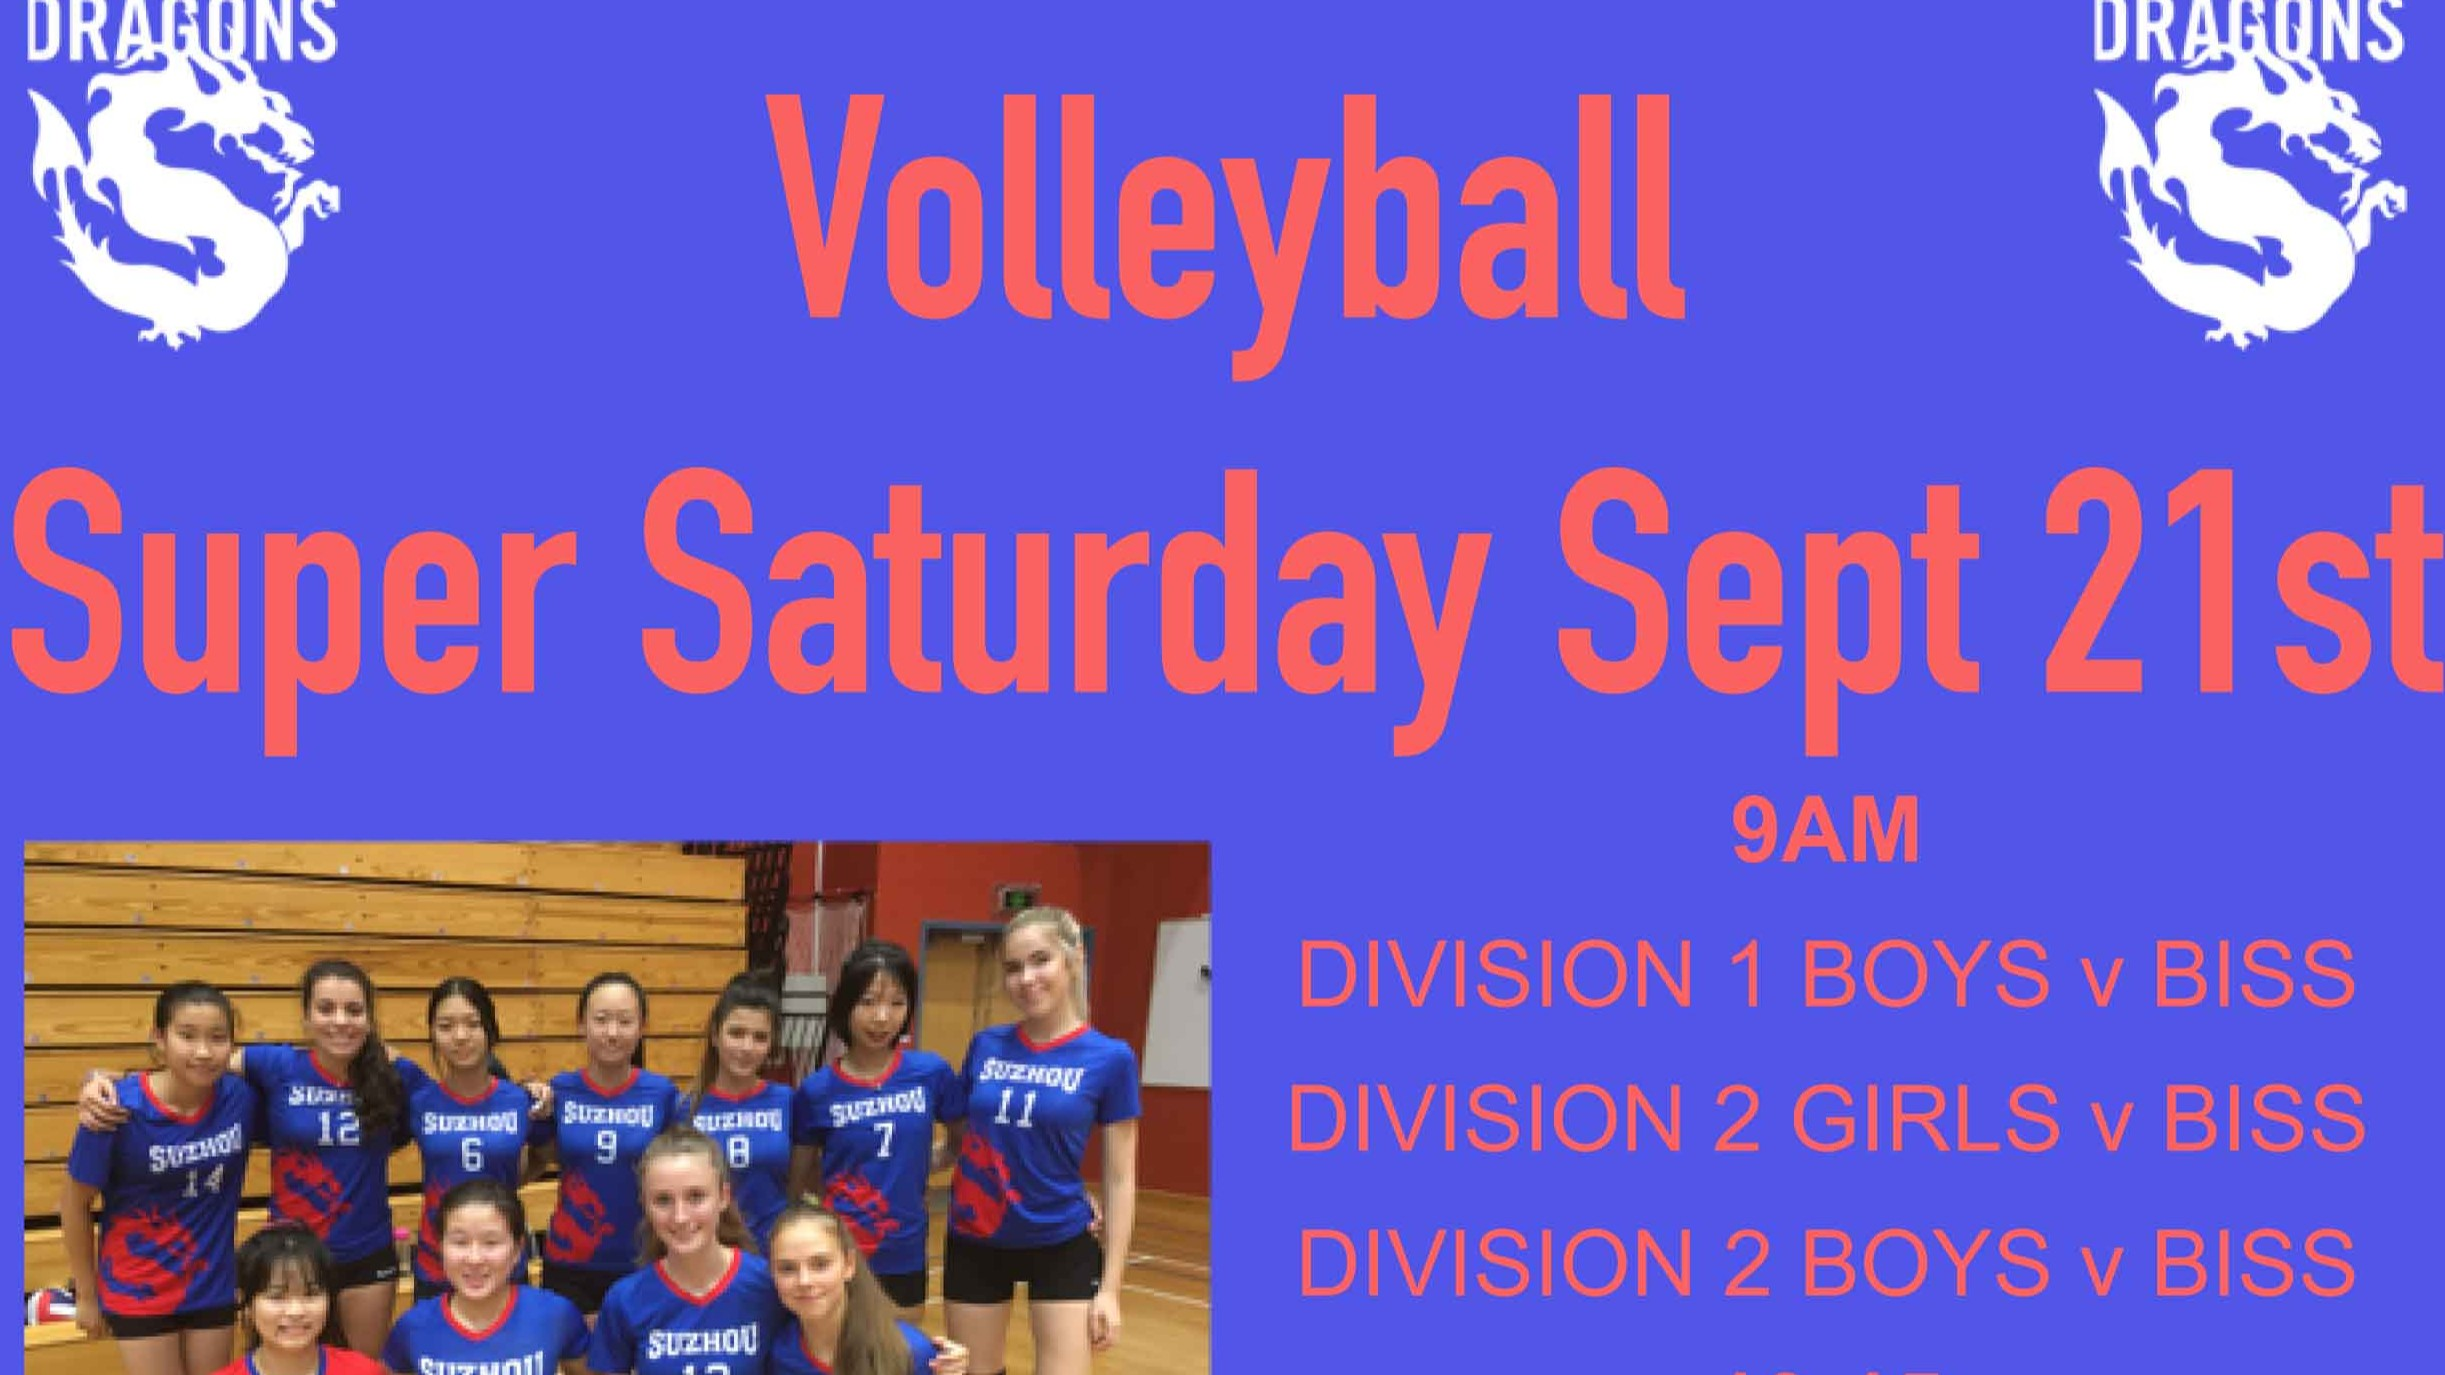 Volleyball Super Saturday